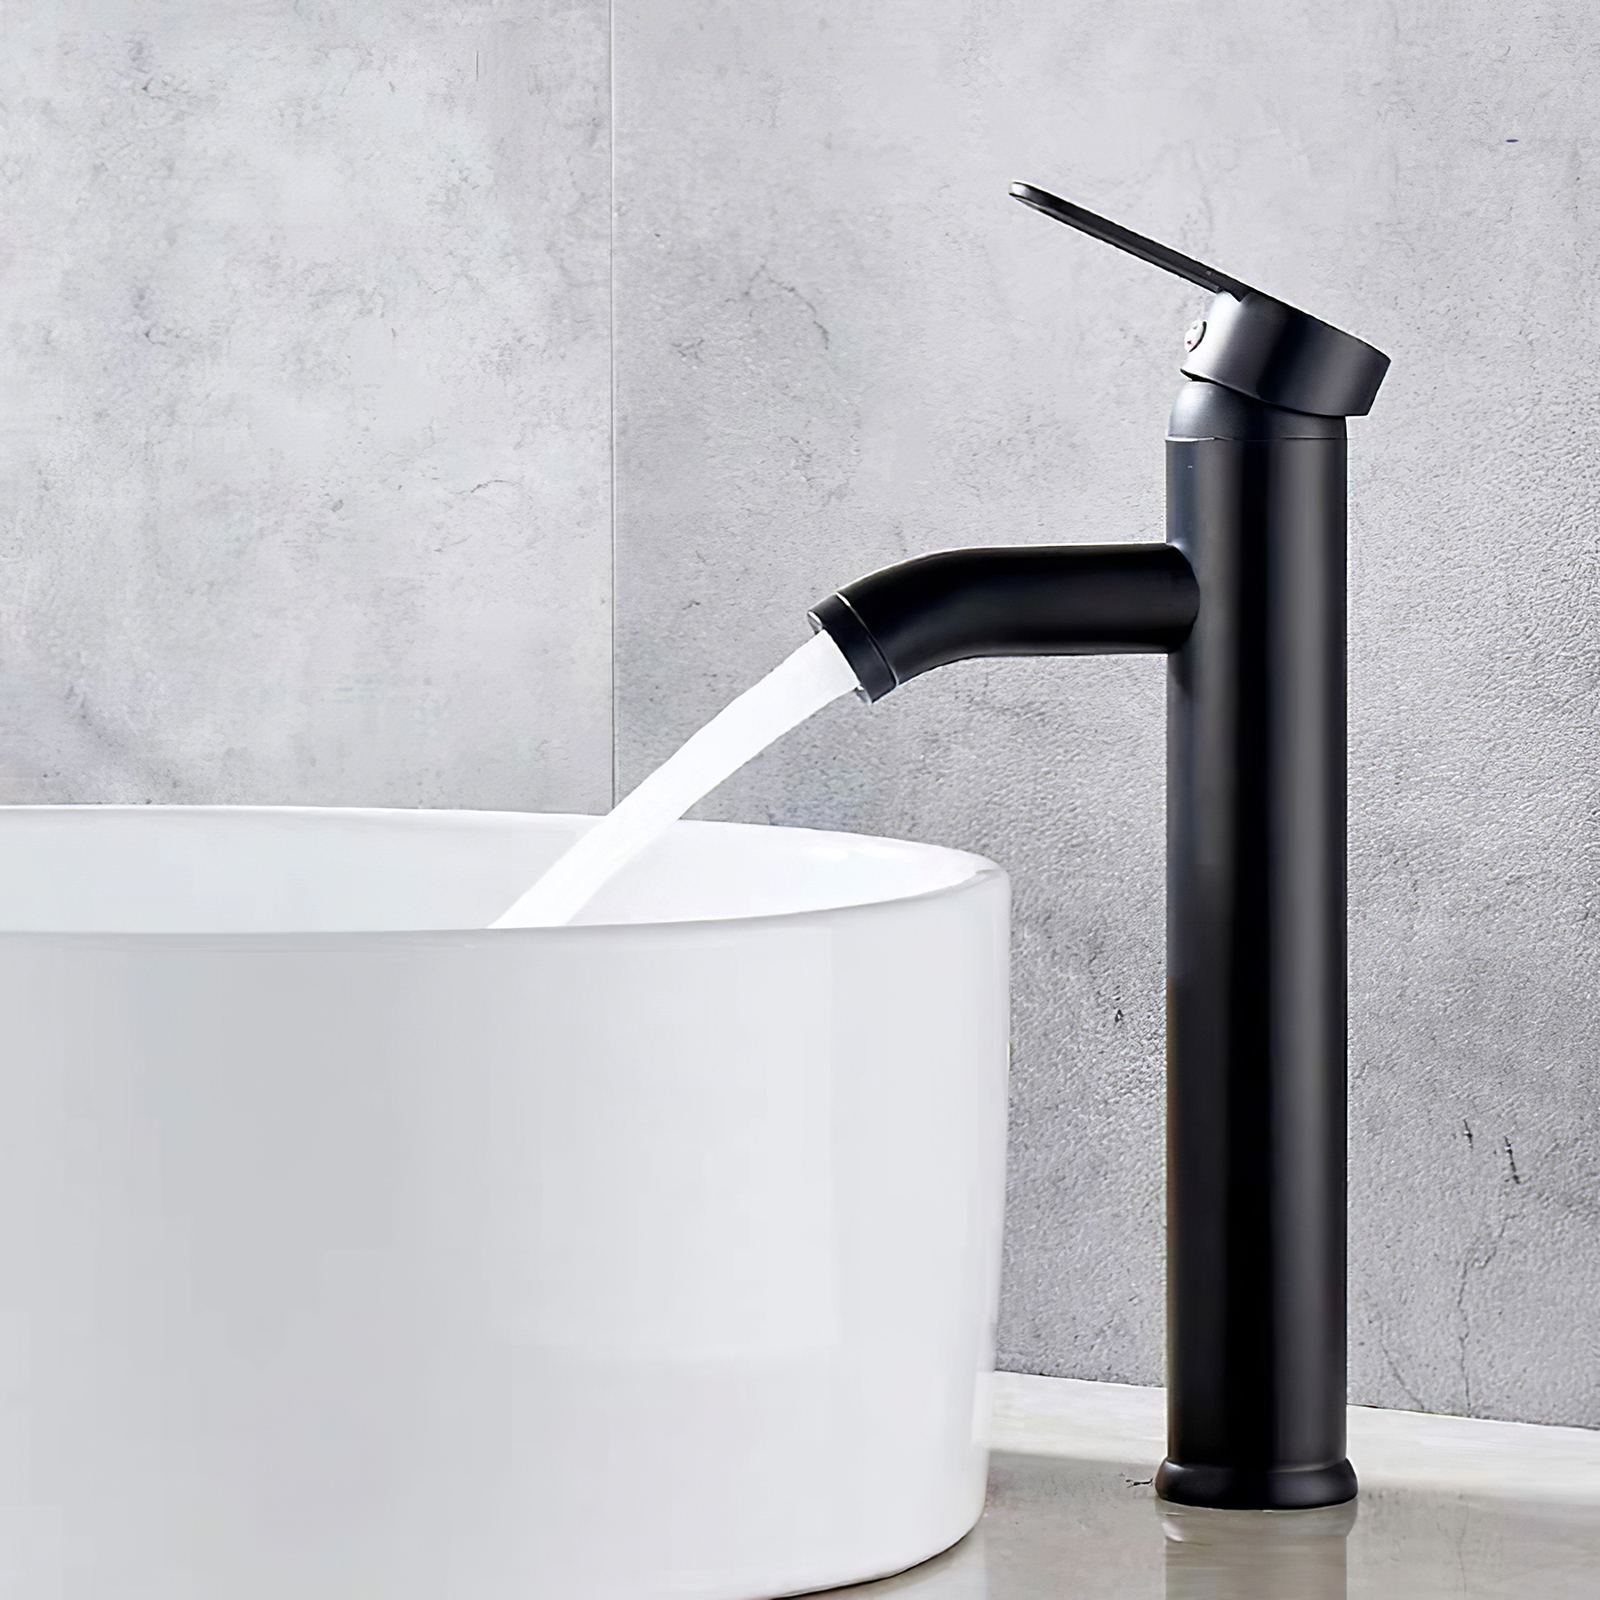 H30ac14e134dc4d6ca9128ef0e9c2e886O Modern Bathroom Basin Faucet Waterfall Deck Mounted Cold And Hot Water Mixer Tap Brass Chrome Vanity Vessel Sink Crane